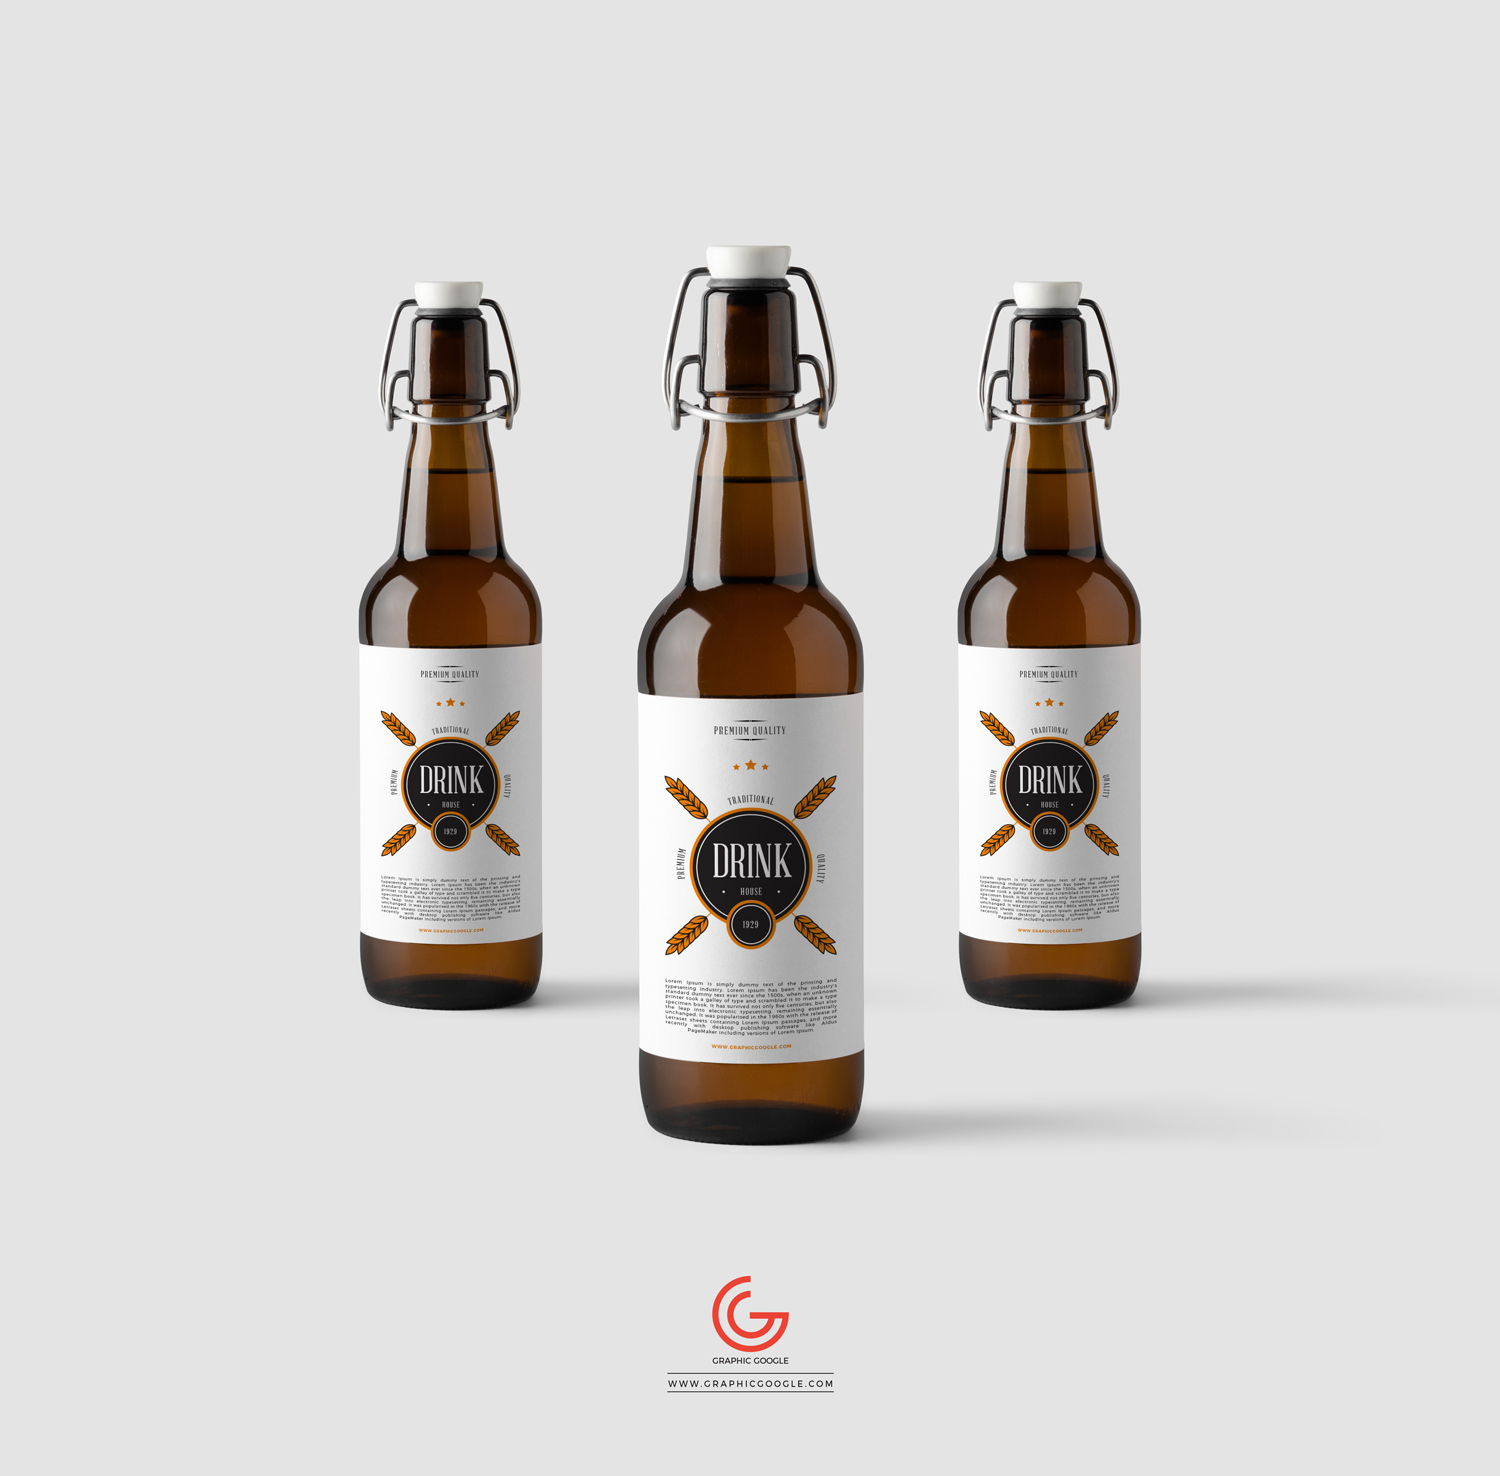 Free-Beverage-Bottle-Mockup-PSD-2018-600